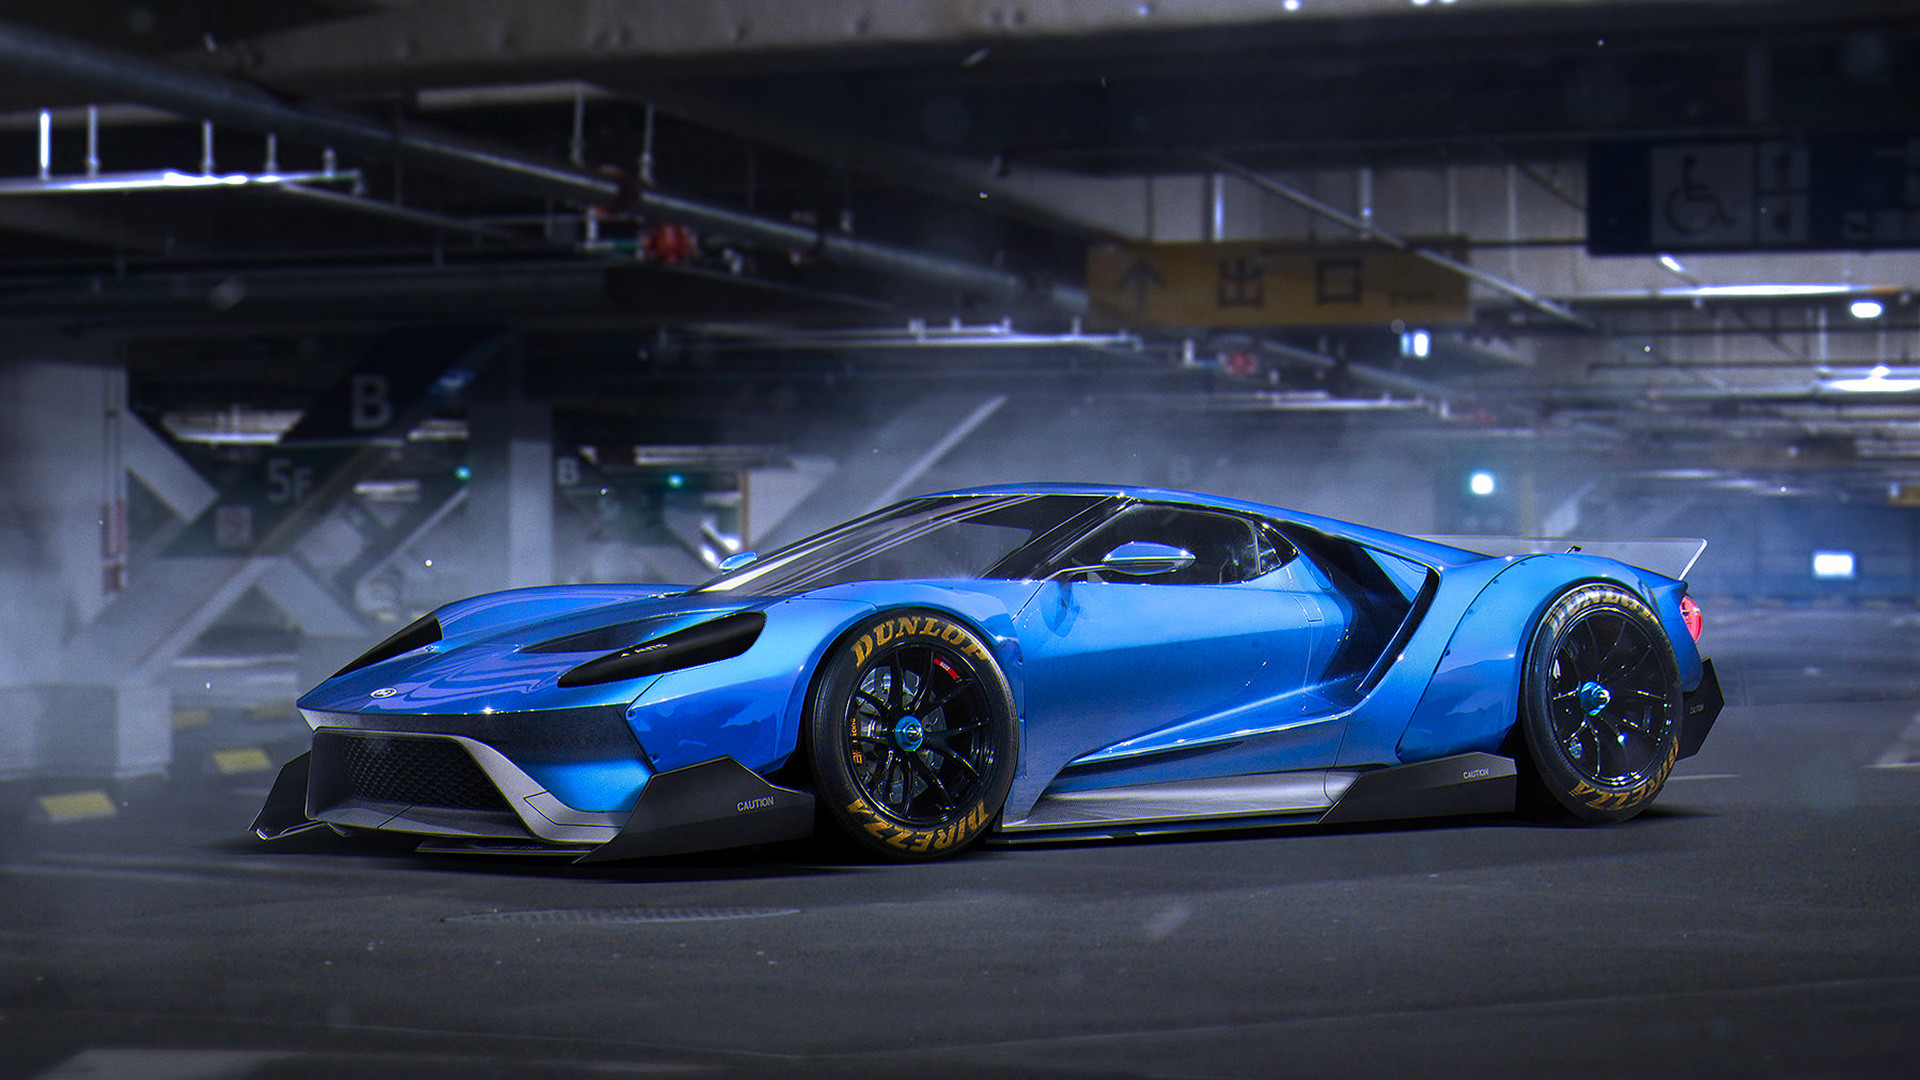 2018 ford gt40 wallpaper 66 images for 2018 ford gt motor